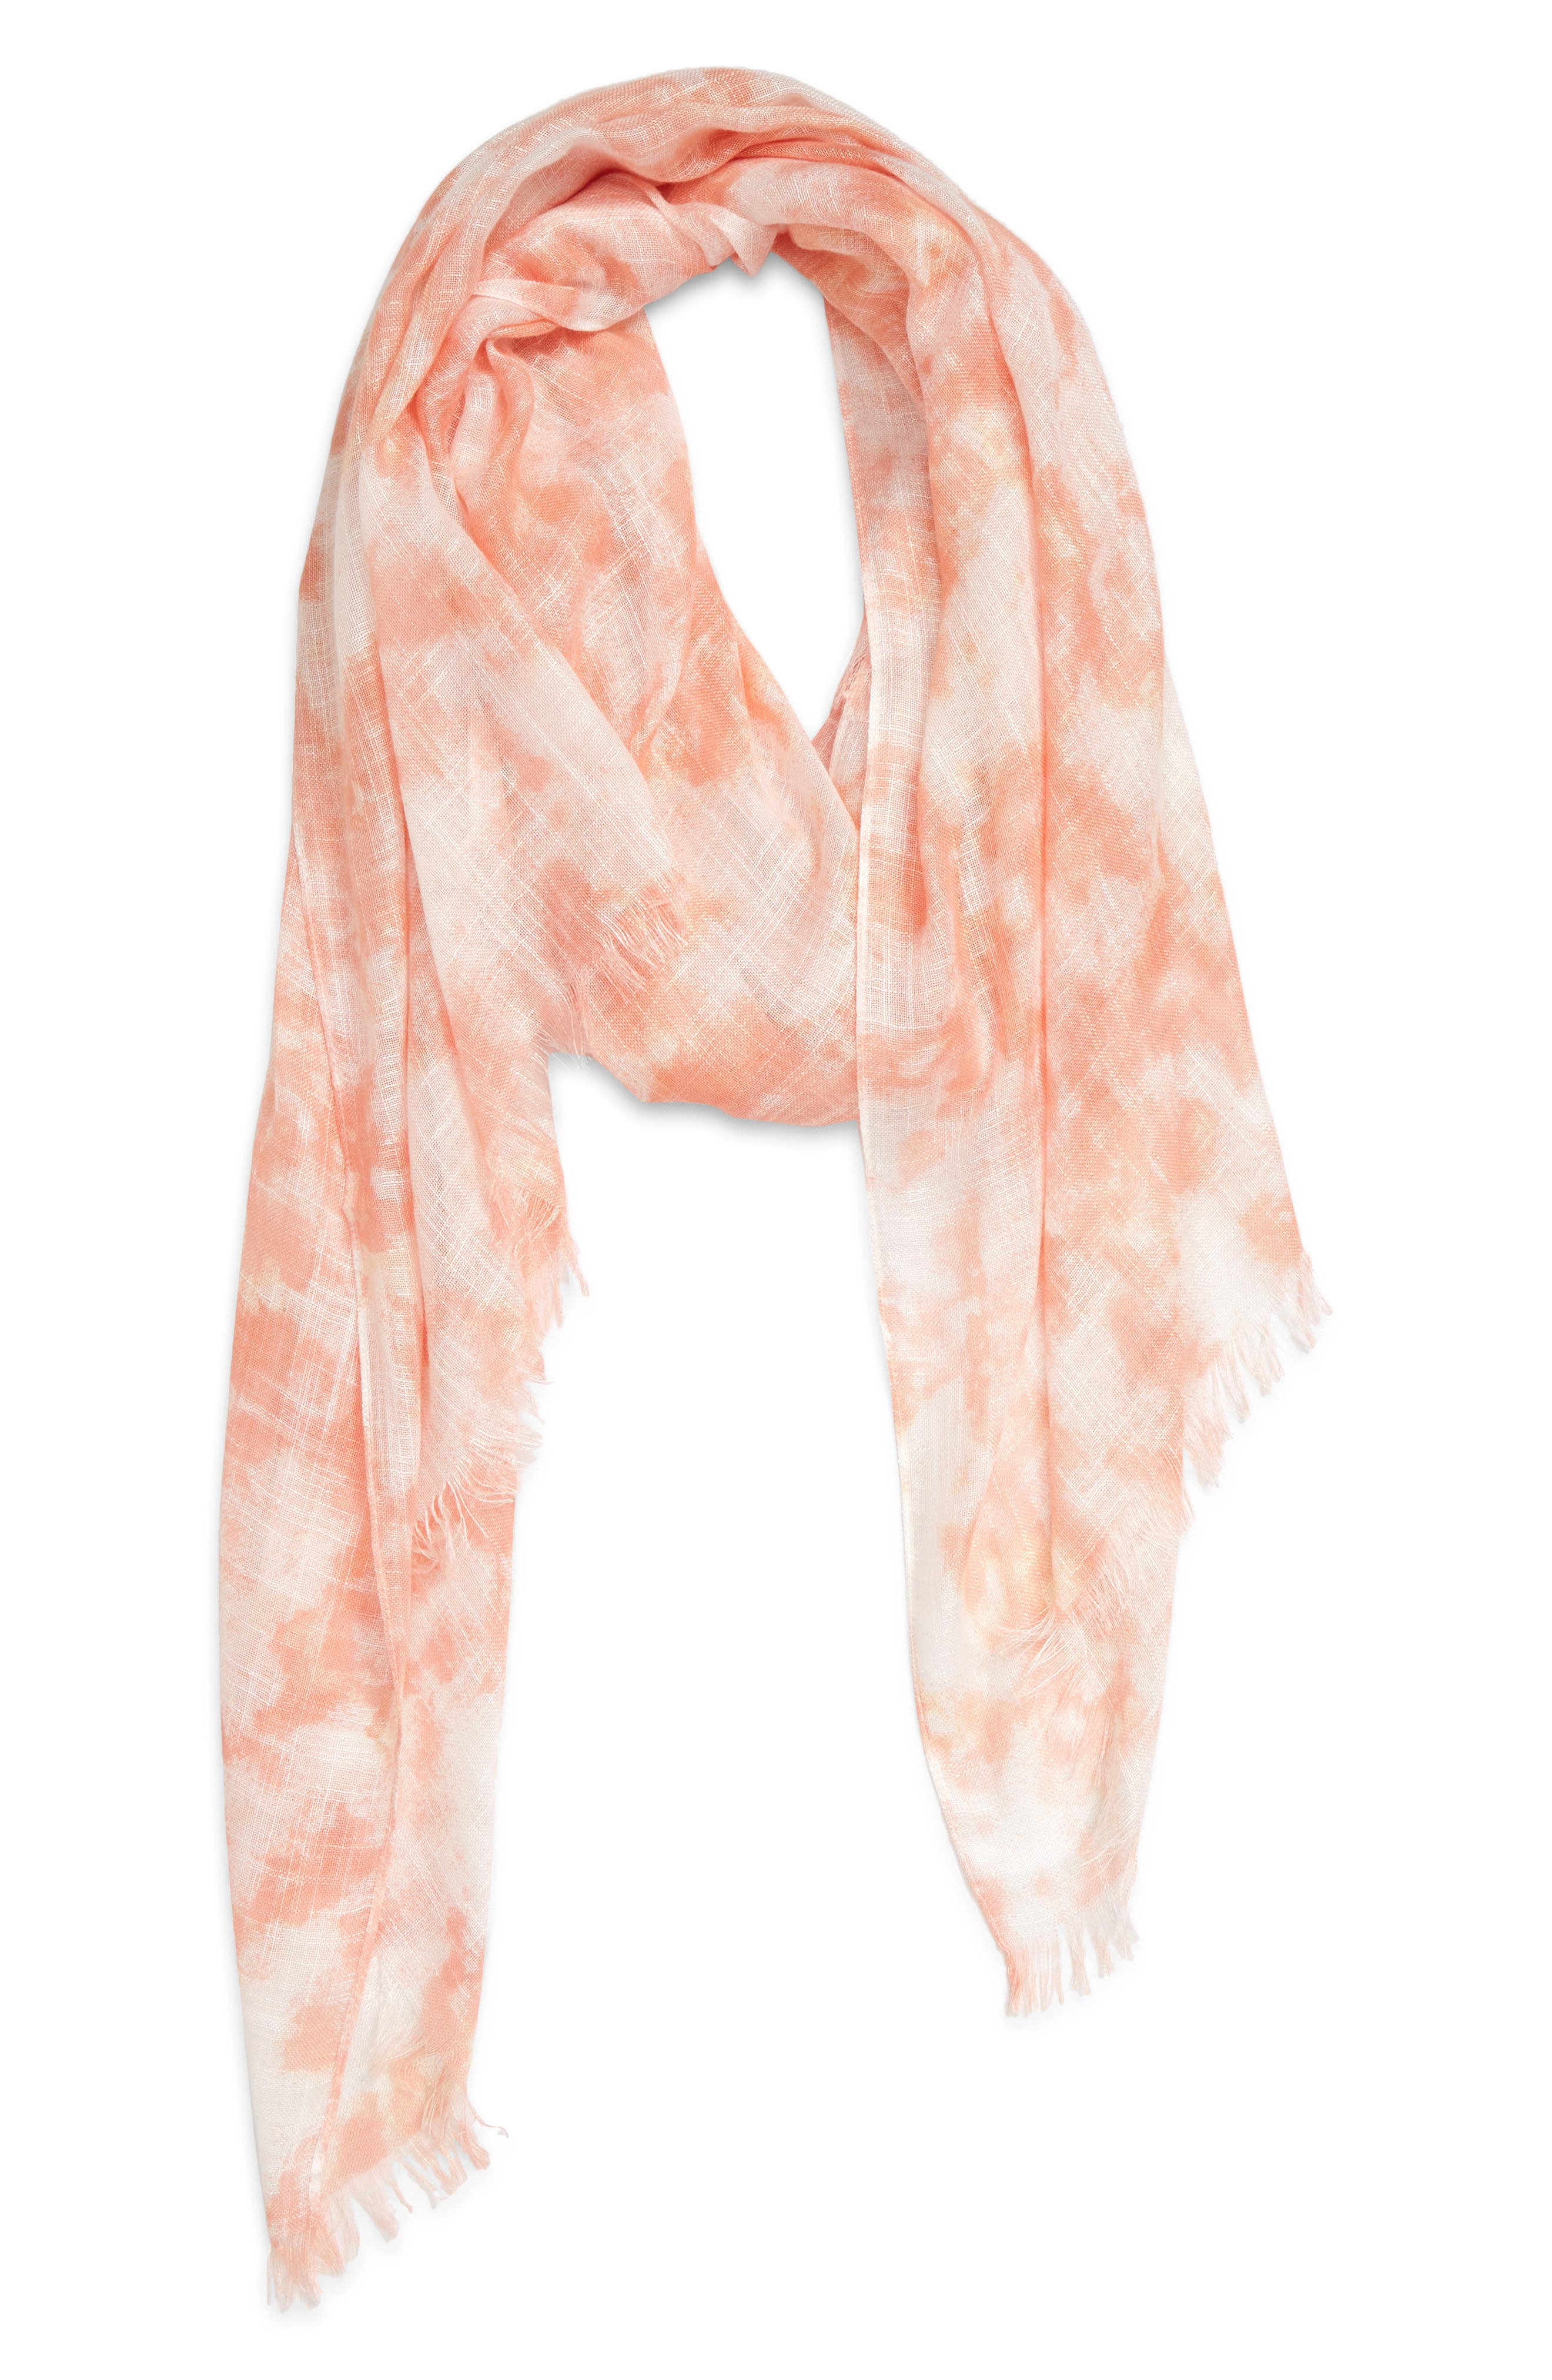 Flowery prints and color-blocked borders detail a gauzy viscose scarf with soft fringe trim. When you buy Treasure & Bond, Nordstrom will donate 2.5% of net sales to organizations that work to empower youth. Style Name: Treasure & Bond Relaxed Scarf. Style Number: 5970158. Available in stores.